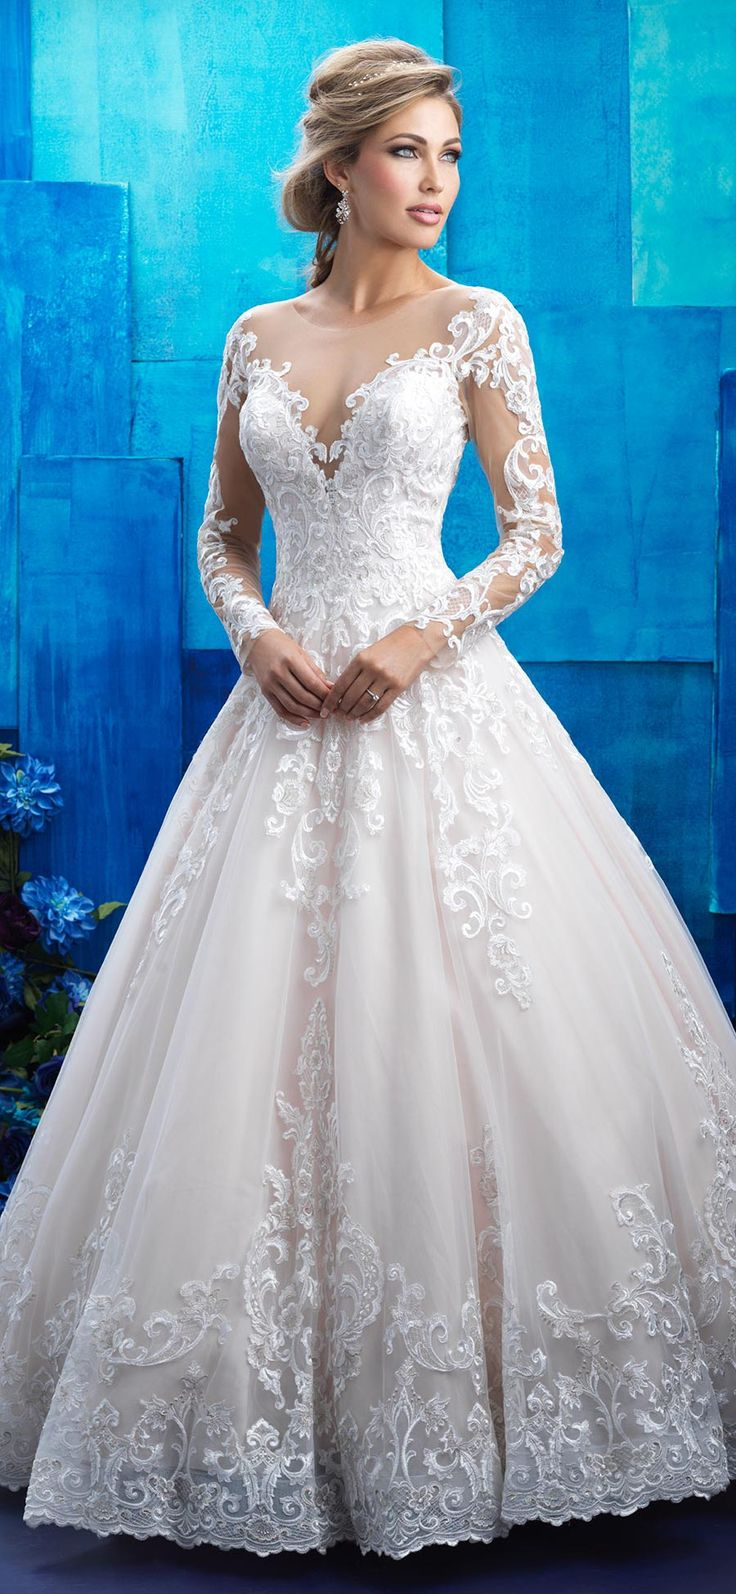 Visit Lovia Bridal Boutique for the best selection of of designer wedding gowns in the Cheshire area. Look no further when searching for that dream dress! Step in to our store of visit us on or web site at www.loviabridal.co.uk Allure Bridals style 9411. This regally romantic long sleeve lace ballgown is the stuff of dreams! @allurebridals